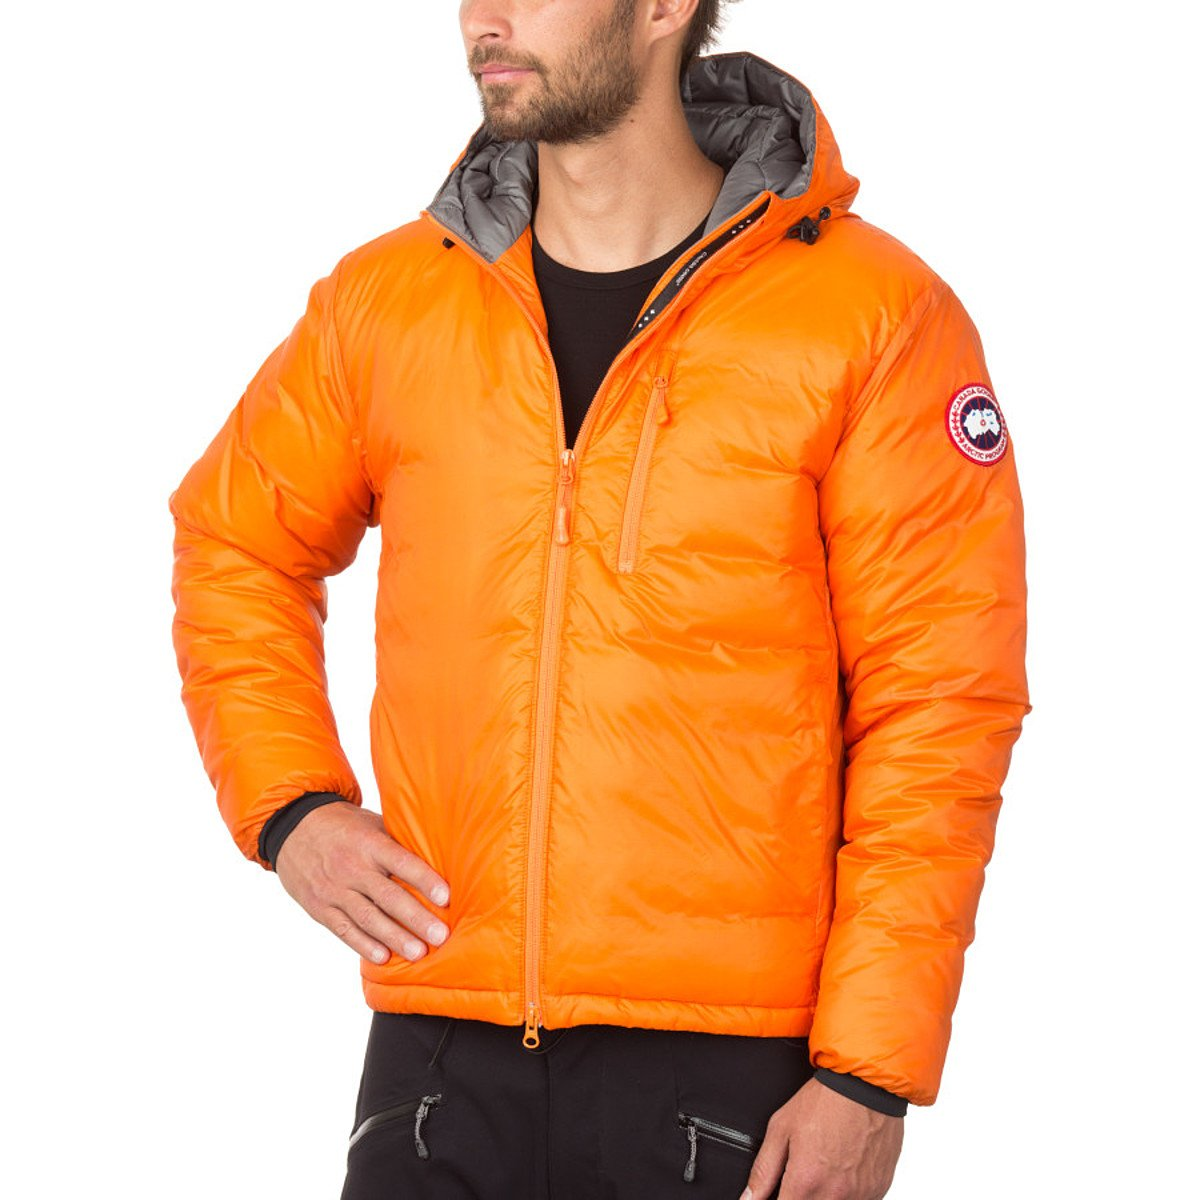 Canada Goose Men's Lodge Down Hooded Jacket пуховик canada goose 2580m 646